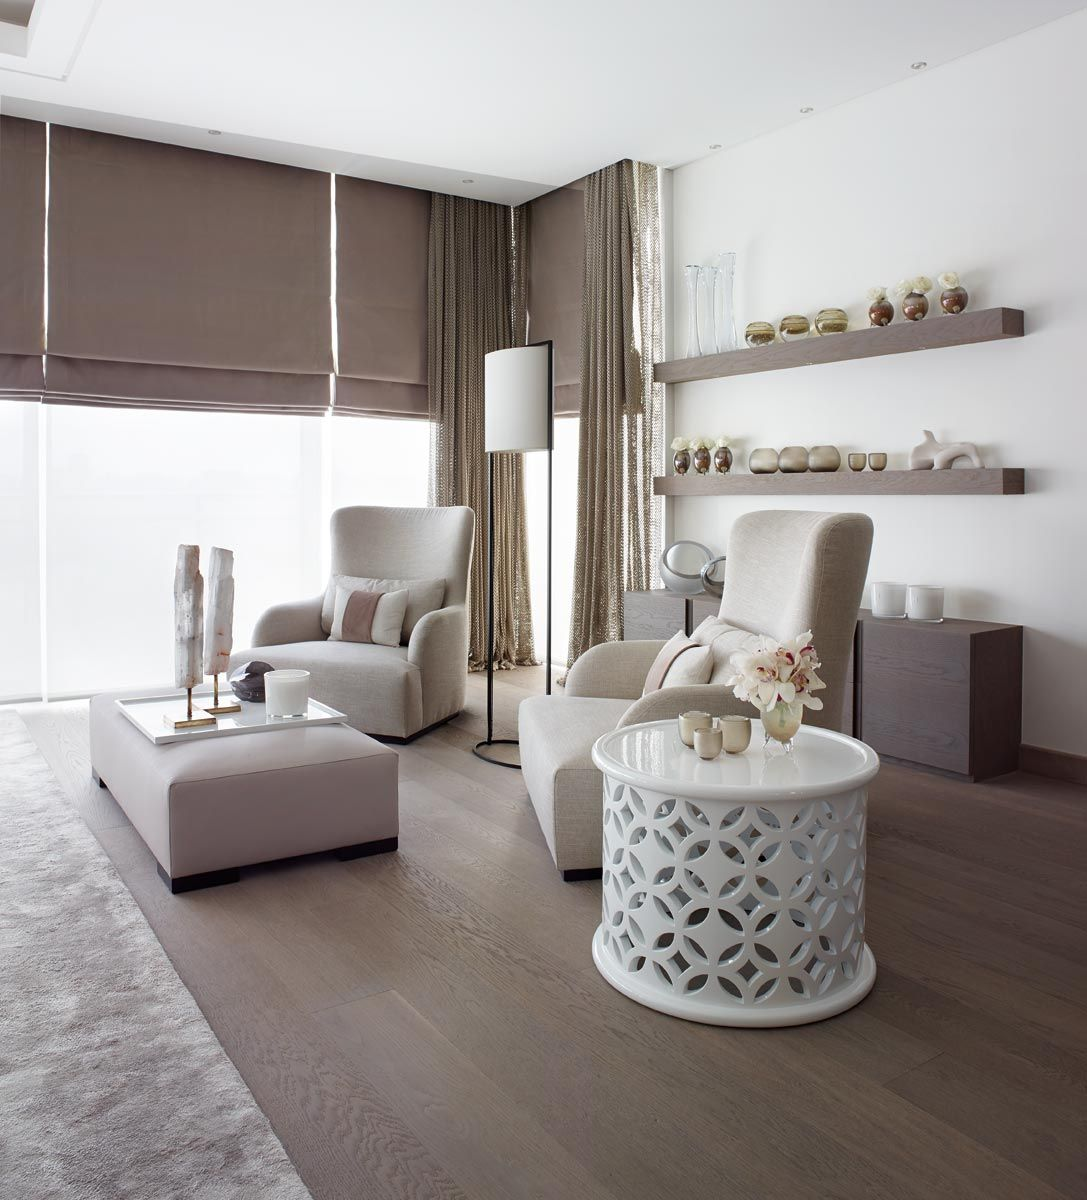 Living Room Chair Designs Kelly Hoppen Couture Kelly Hoppen Interiors Livingroom Ideas